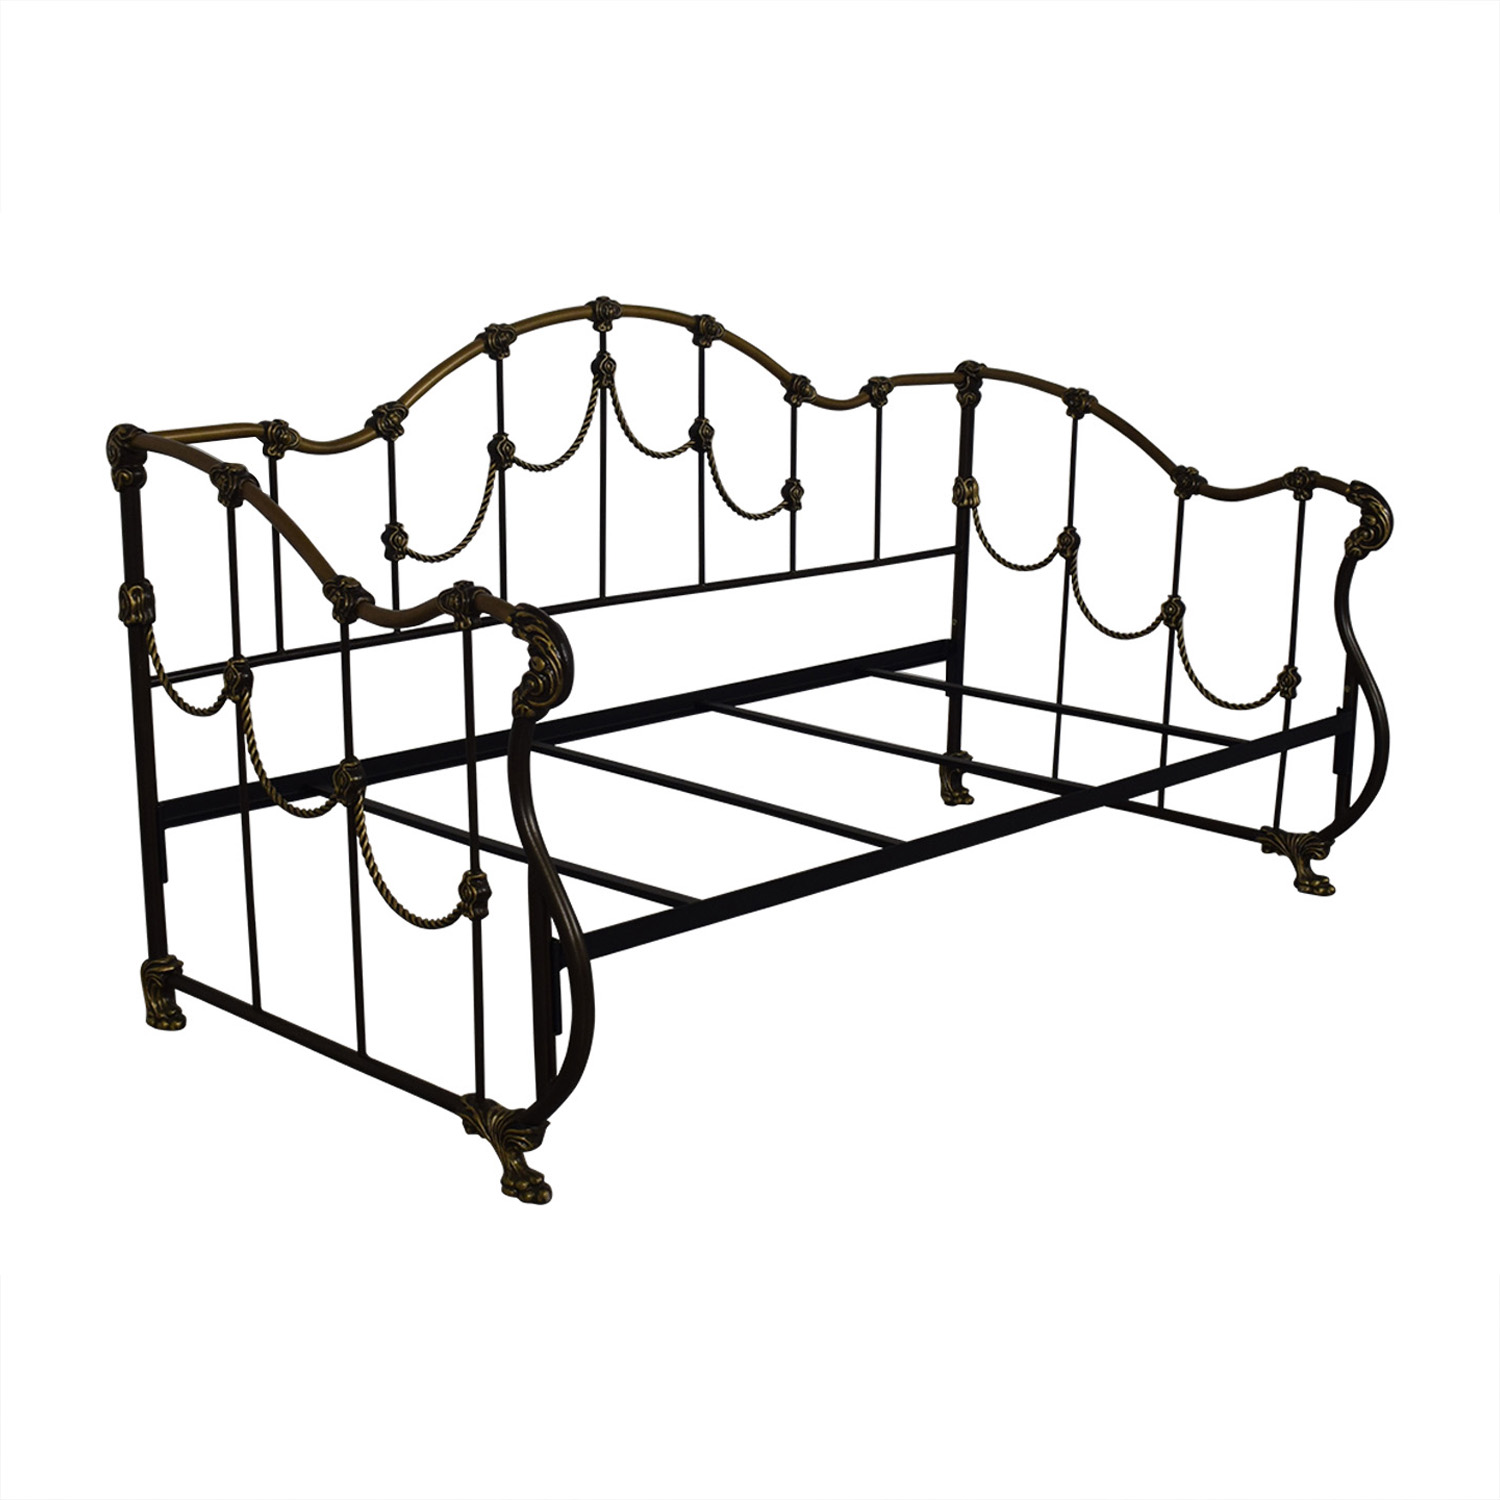 Gold and Black Metal Twin Day Bed / Bed Frames